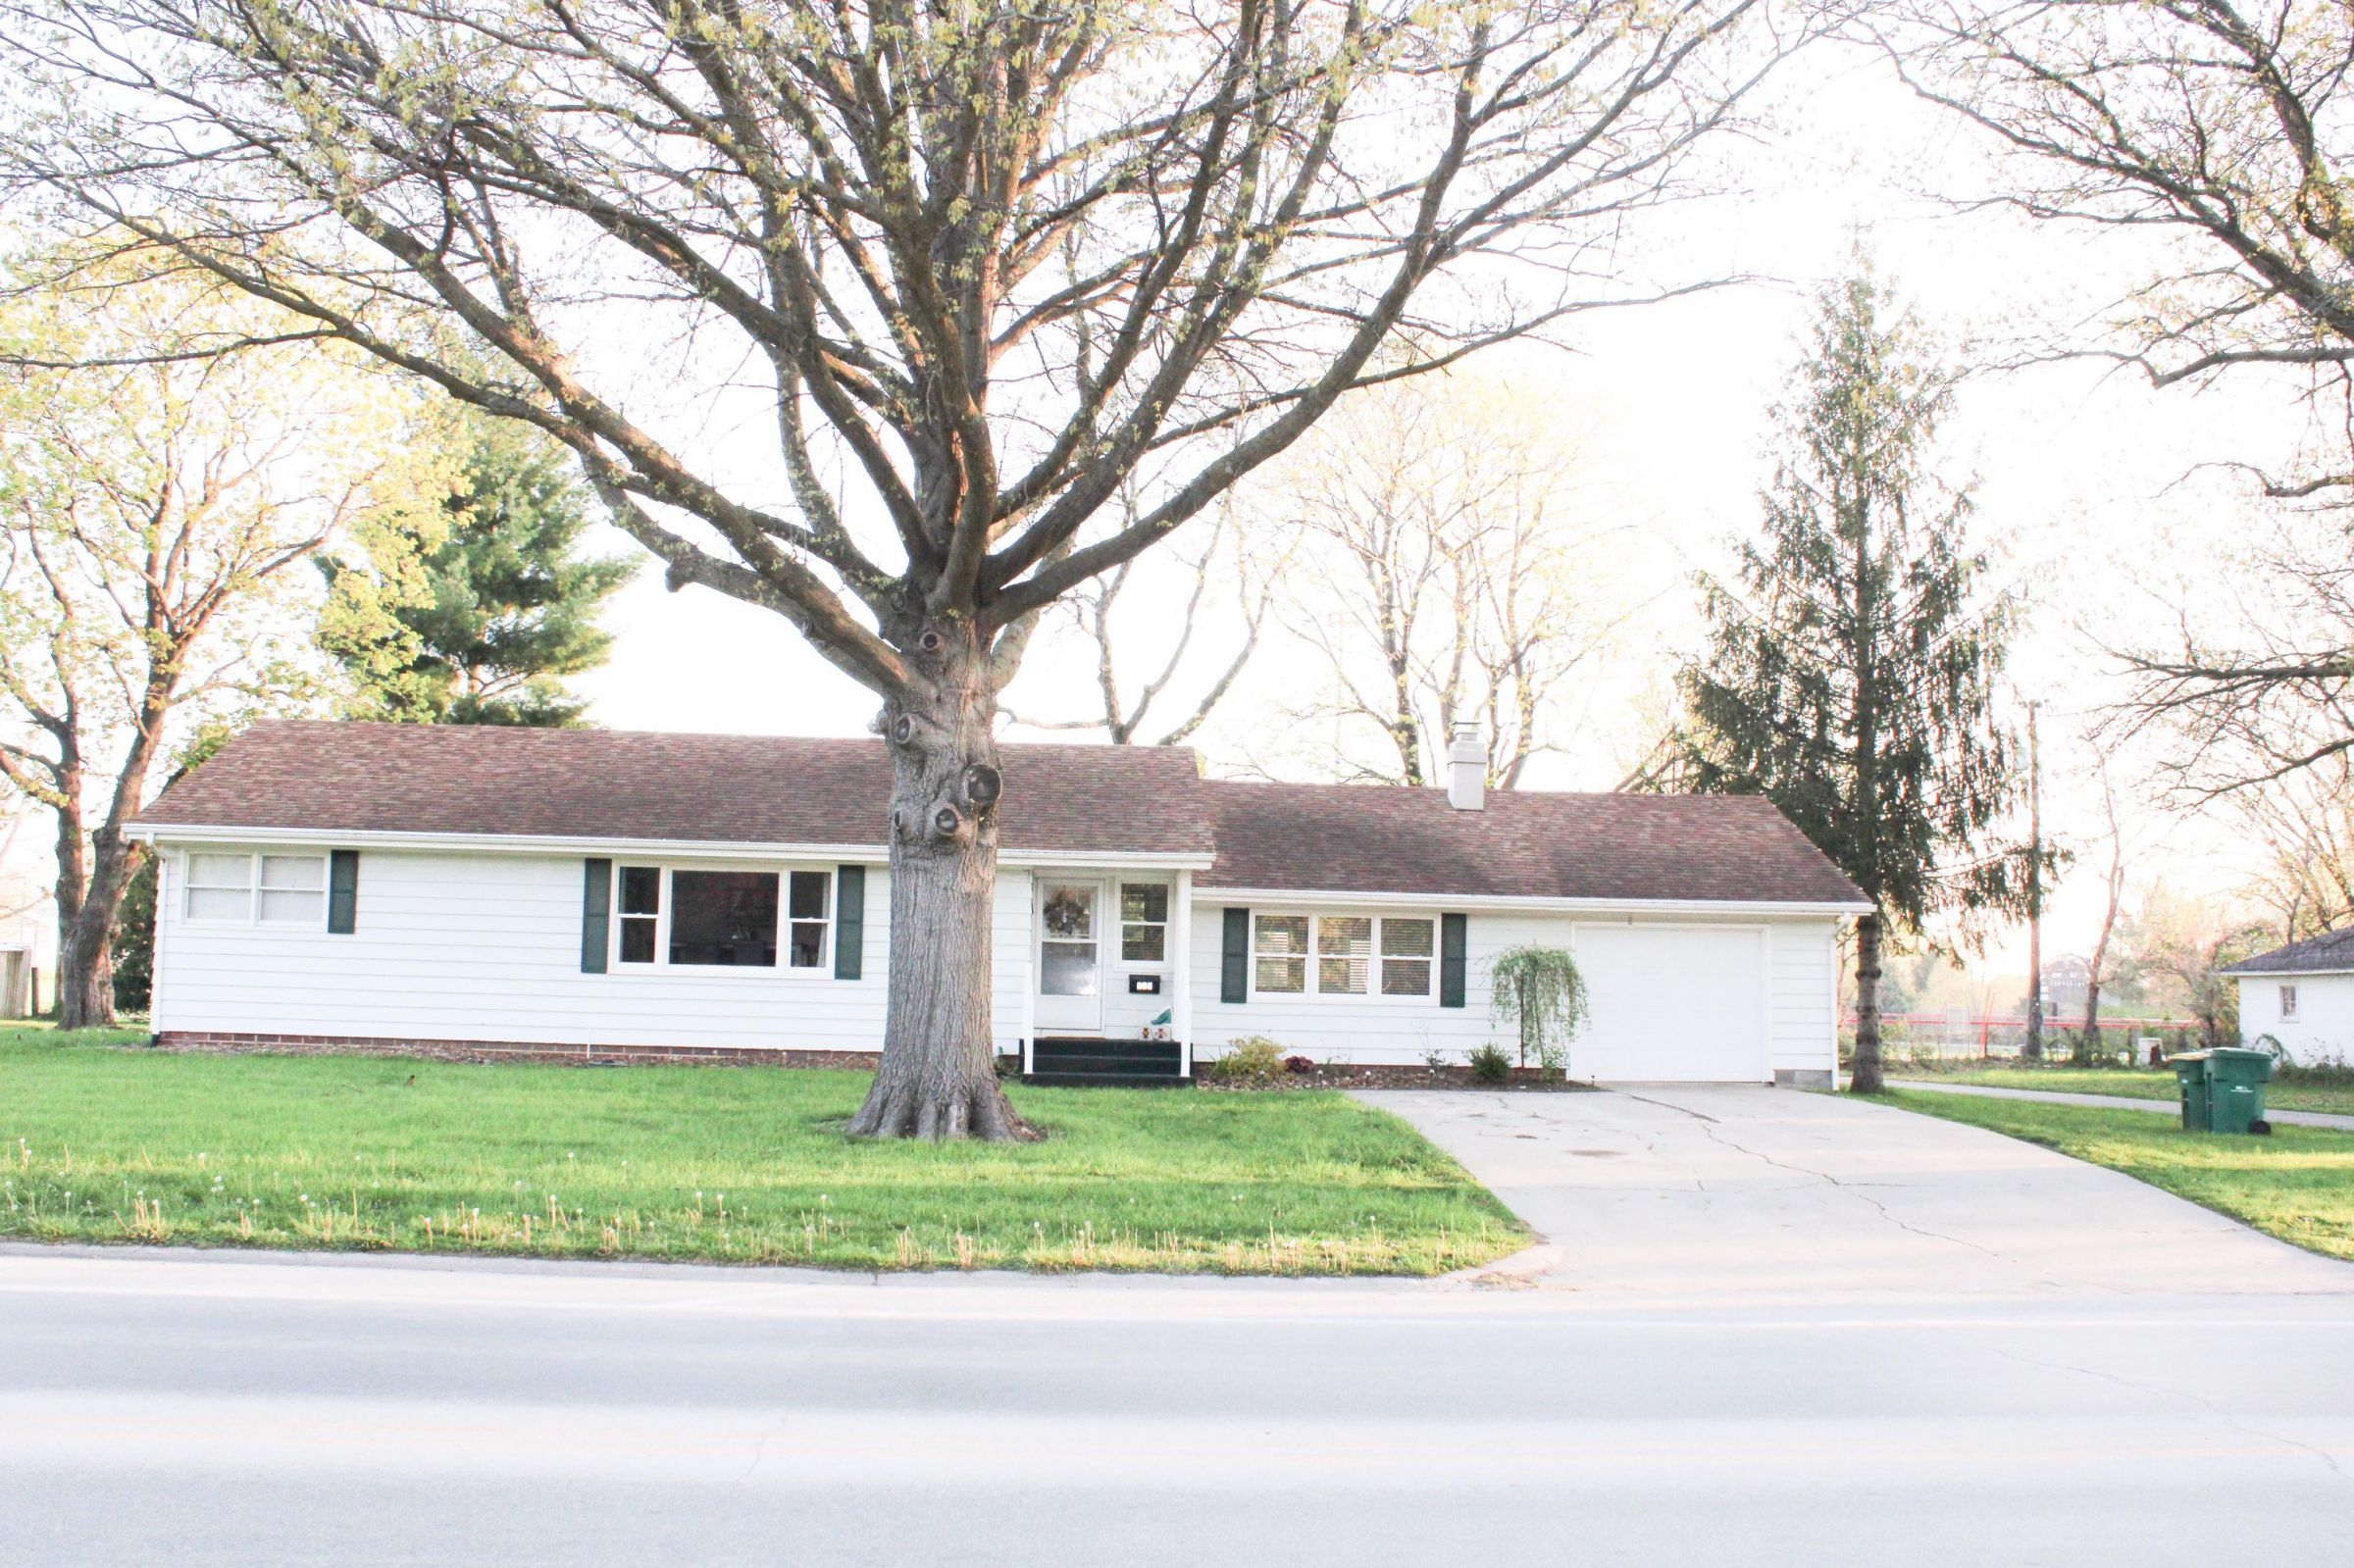 residential-union-county-iowa-0-acres-listing-number-15503-4-2021-04-29-151827.jpg